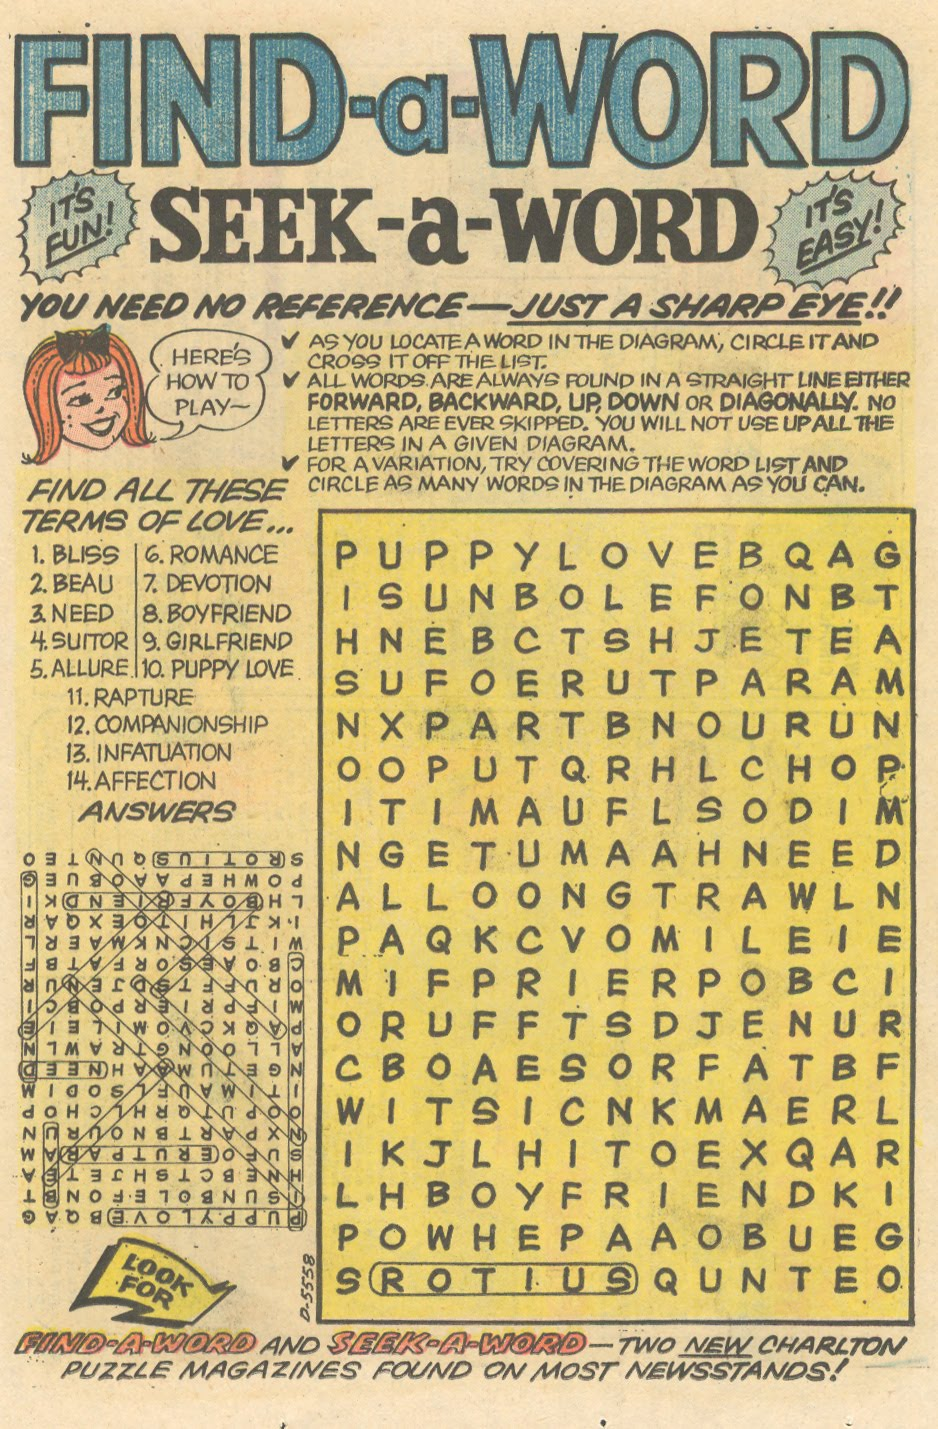 Blog282 Charlton%252BWord%252BPuzzles 3 ... comics depicting rape, incest and other sex crimes to under 18s.